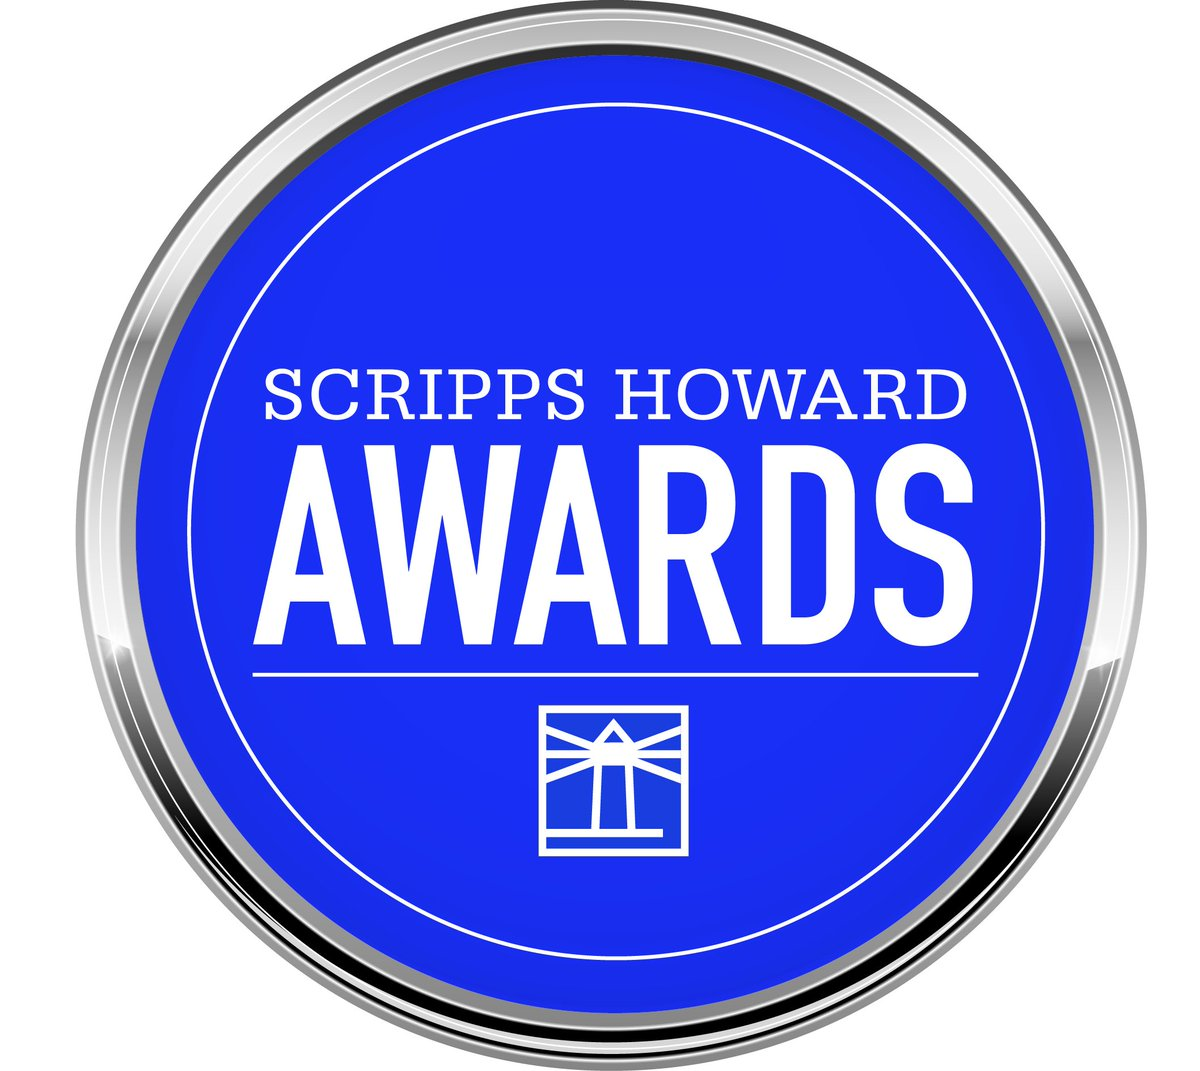 """The winner in the Investigative Reporting category is @Reuters, for """"Myanmar Burning,"""" documenting the expulsion of Rohingya Muslims in Myanmar. """"Brave, intrepid collection of reporting,"""" said the judges, adding that this work """"resonated throughout the world.""""#ScrippsHowardAwards"""